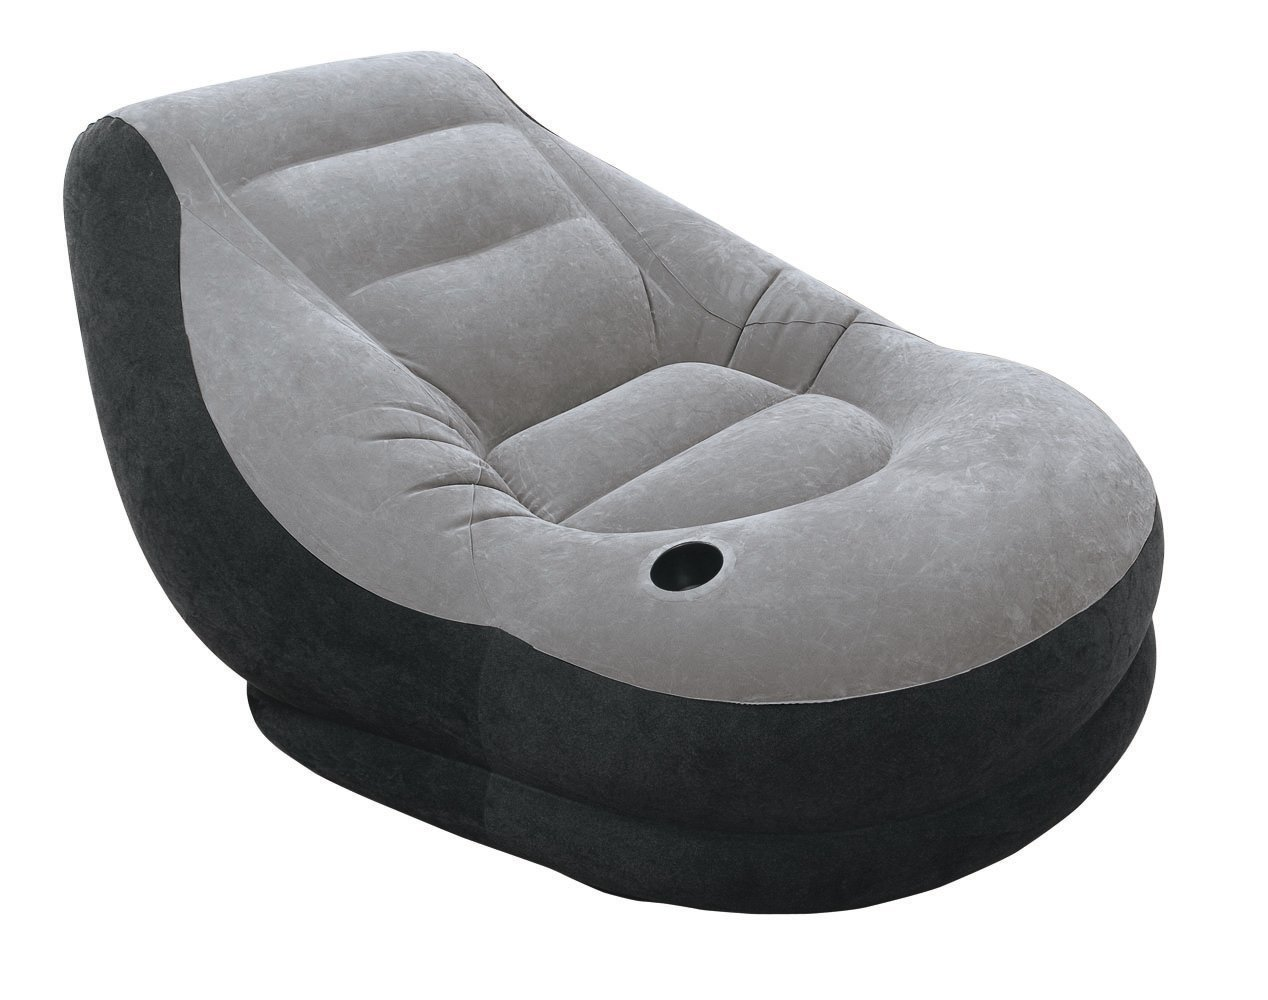 Brilliant Intex Inflatable Ultra Lounge Chair With Cup Holder And Alphanode Cool Chair Designs And Ideas Alphanodeonline